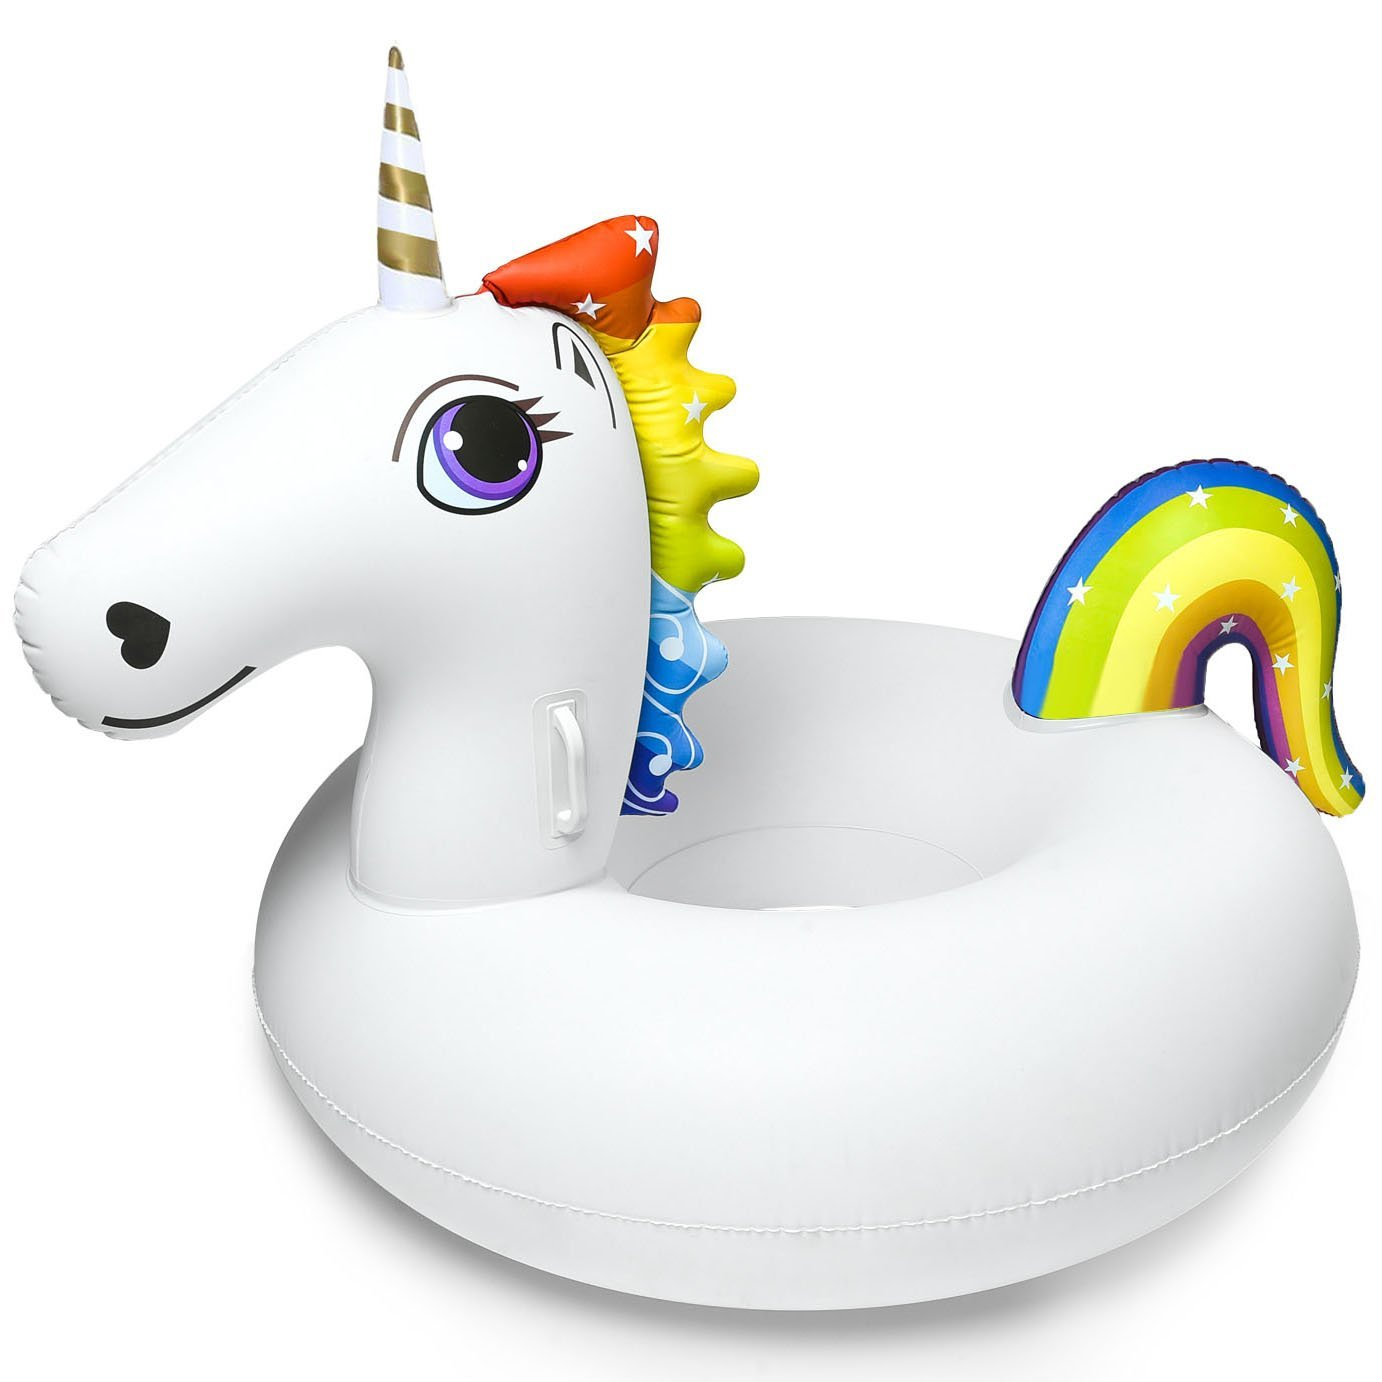 PFLOAT 45 Inches Unicorn Pool Float Inflatable Party Tube - Super Big Outdoor Pool Float WIth Rapid Valves for Kids and Adults [ Free Carrying Bag ]